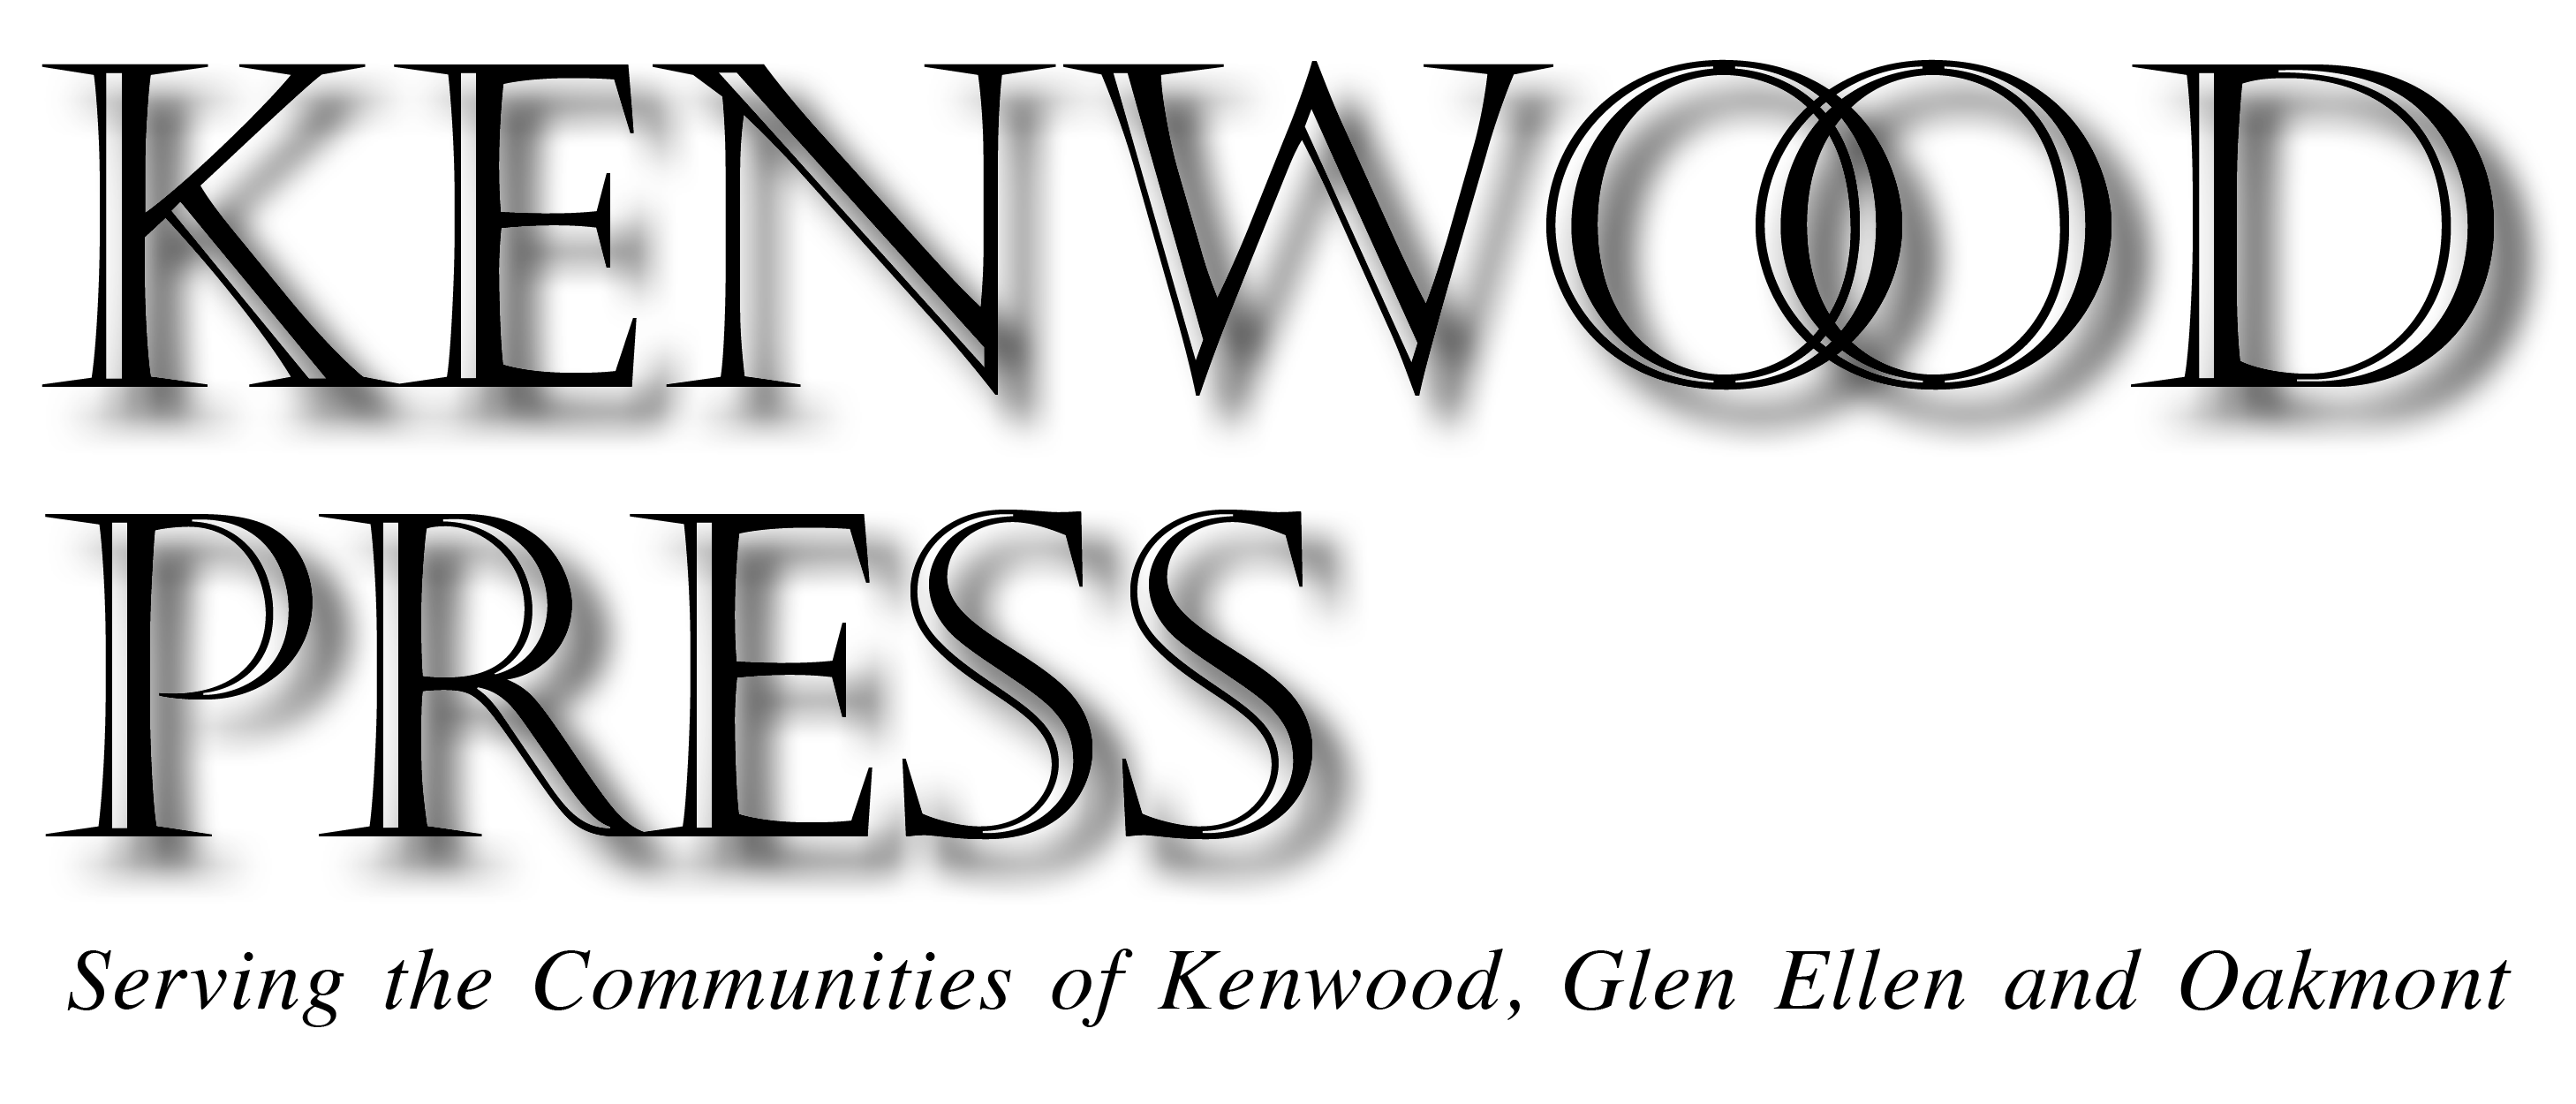 Kenwood Press News